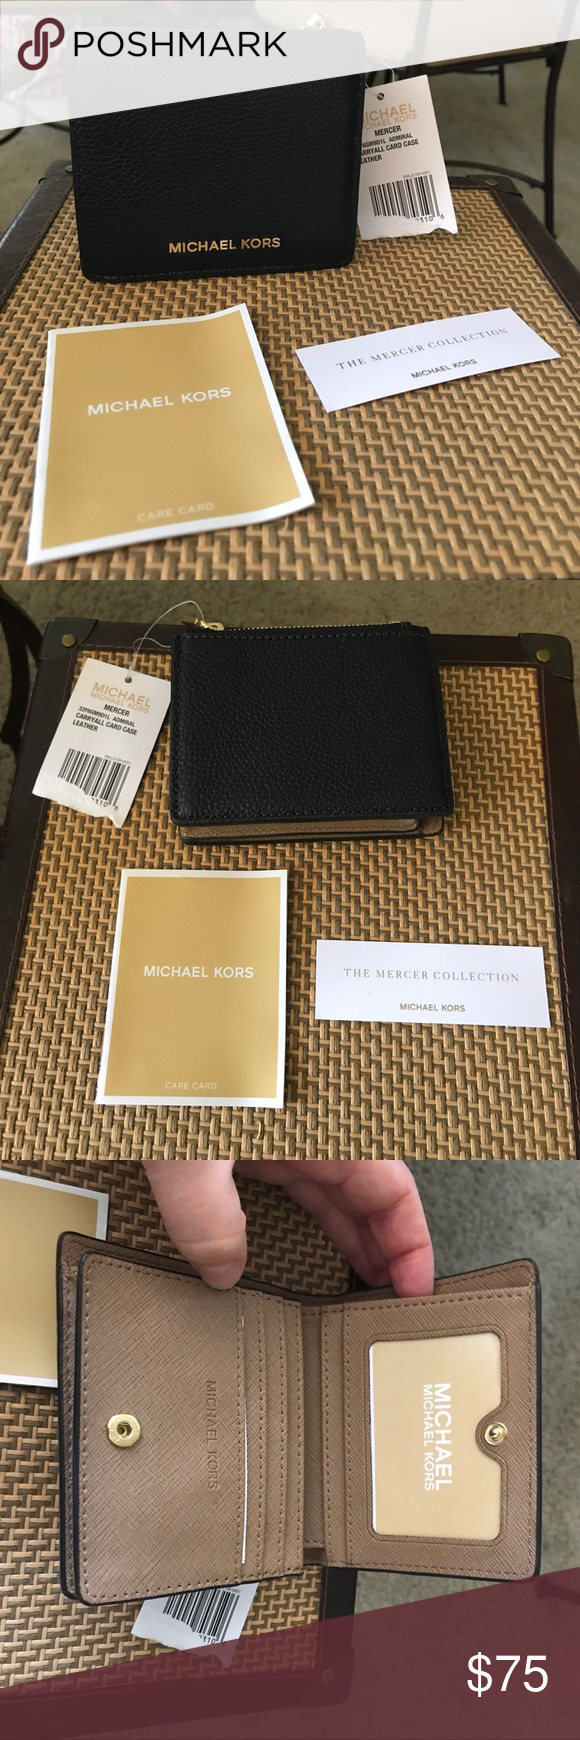 32696febb438 Michael Kors Mercer Pebble Leather Wallet NWT NWT Michael Kors Mercer Card  Case Wallet Two Tone Admiral Blue Pebble Leather and Tan Interior with coin  ...